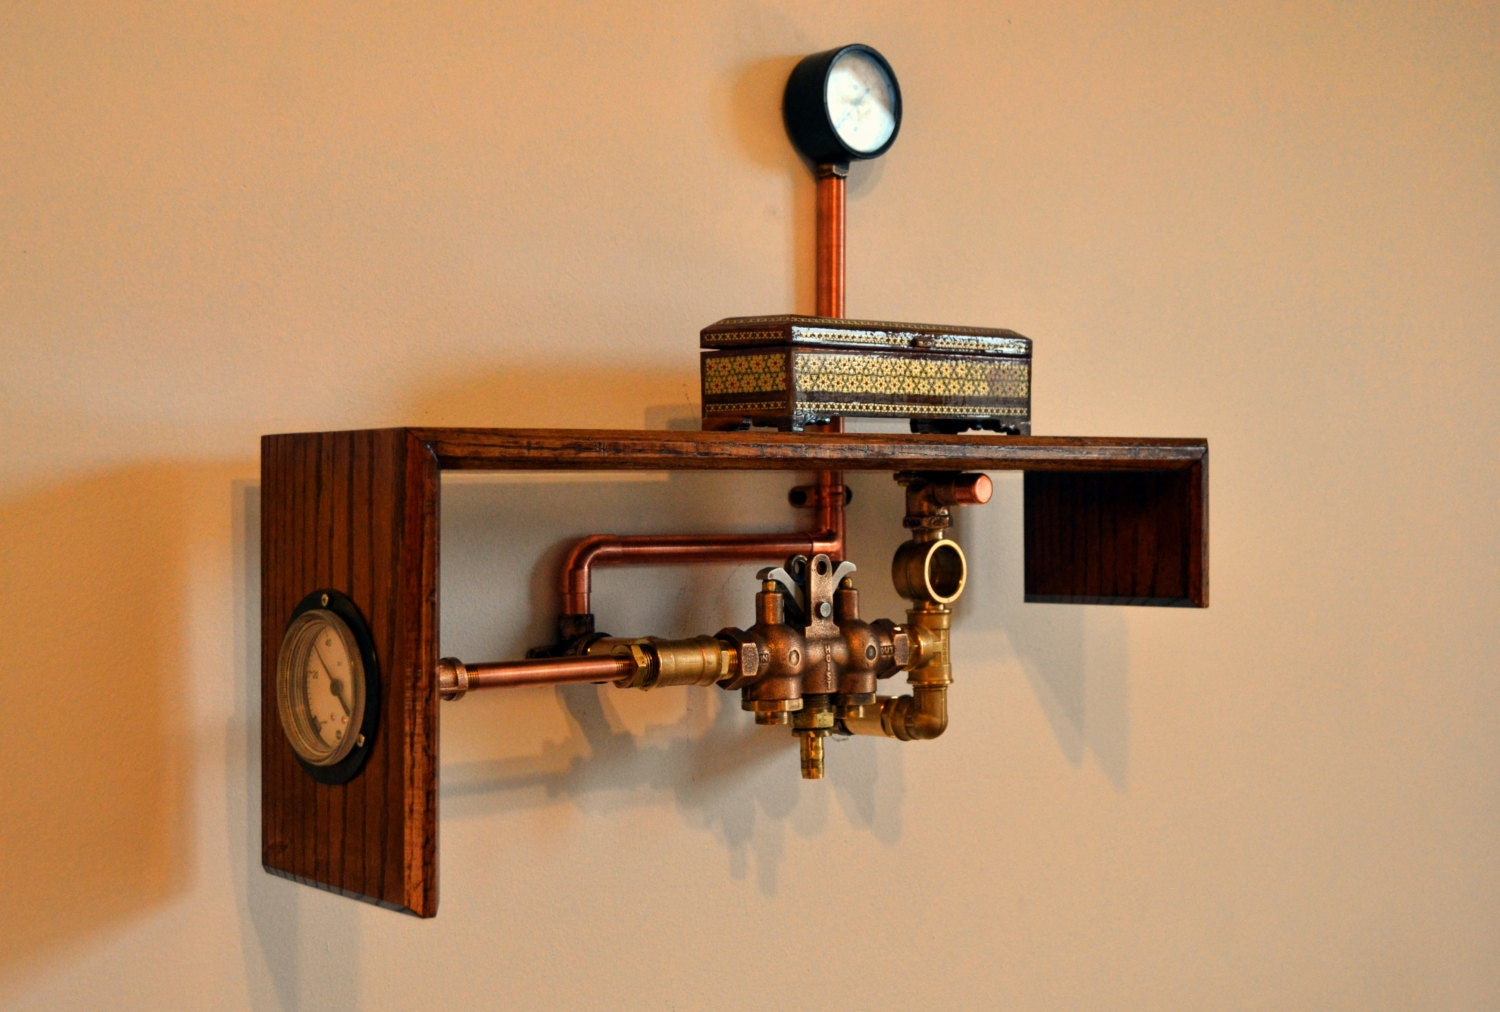 SOLDSteampunk Industrial Home Decor Steampunk Furniture